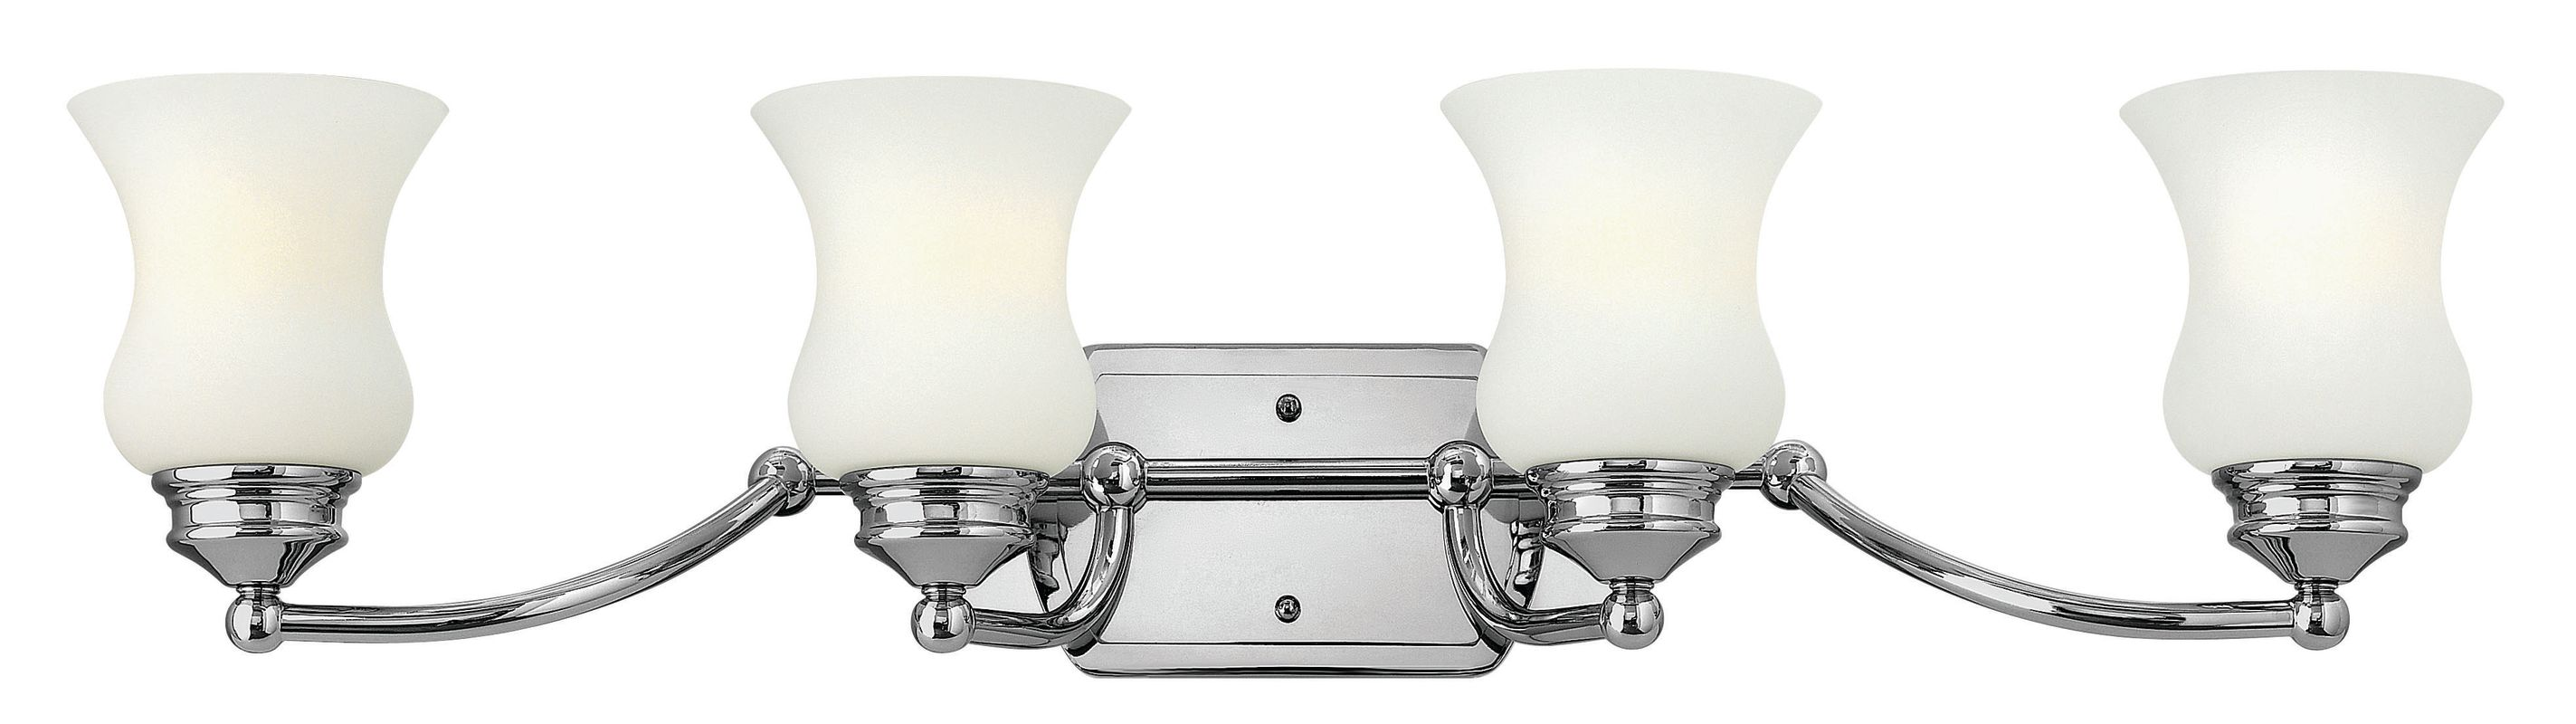 Hinkley Lighting 50014 4 Light Bathroom Vanity Light from the